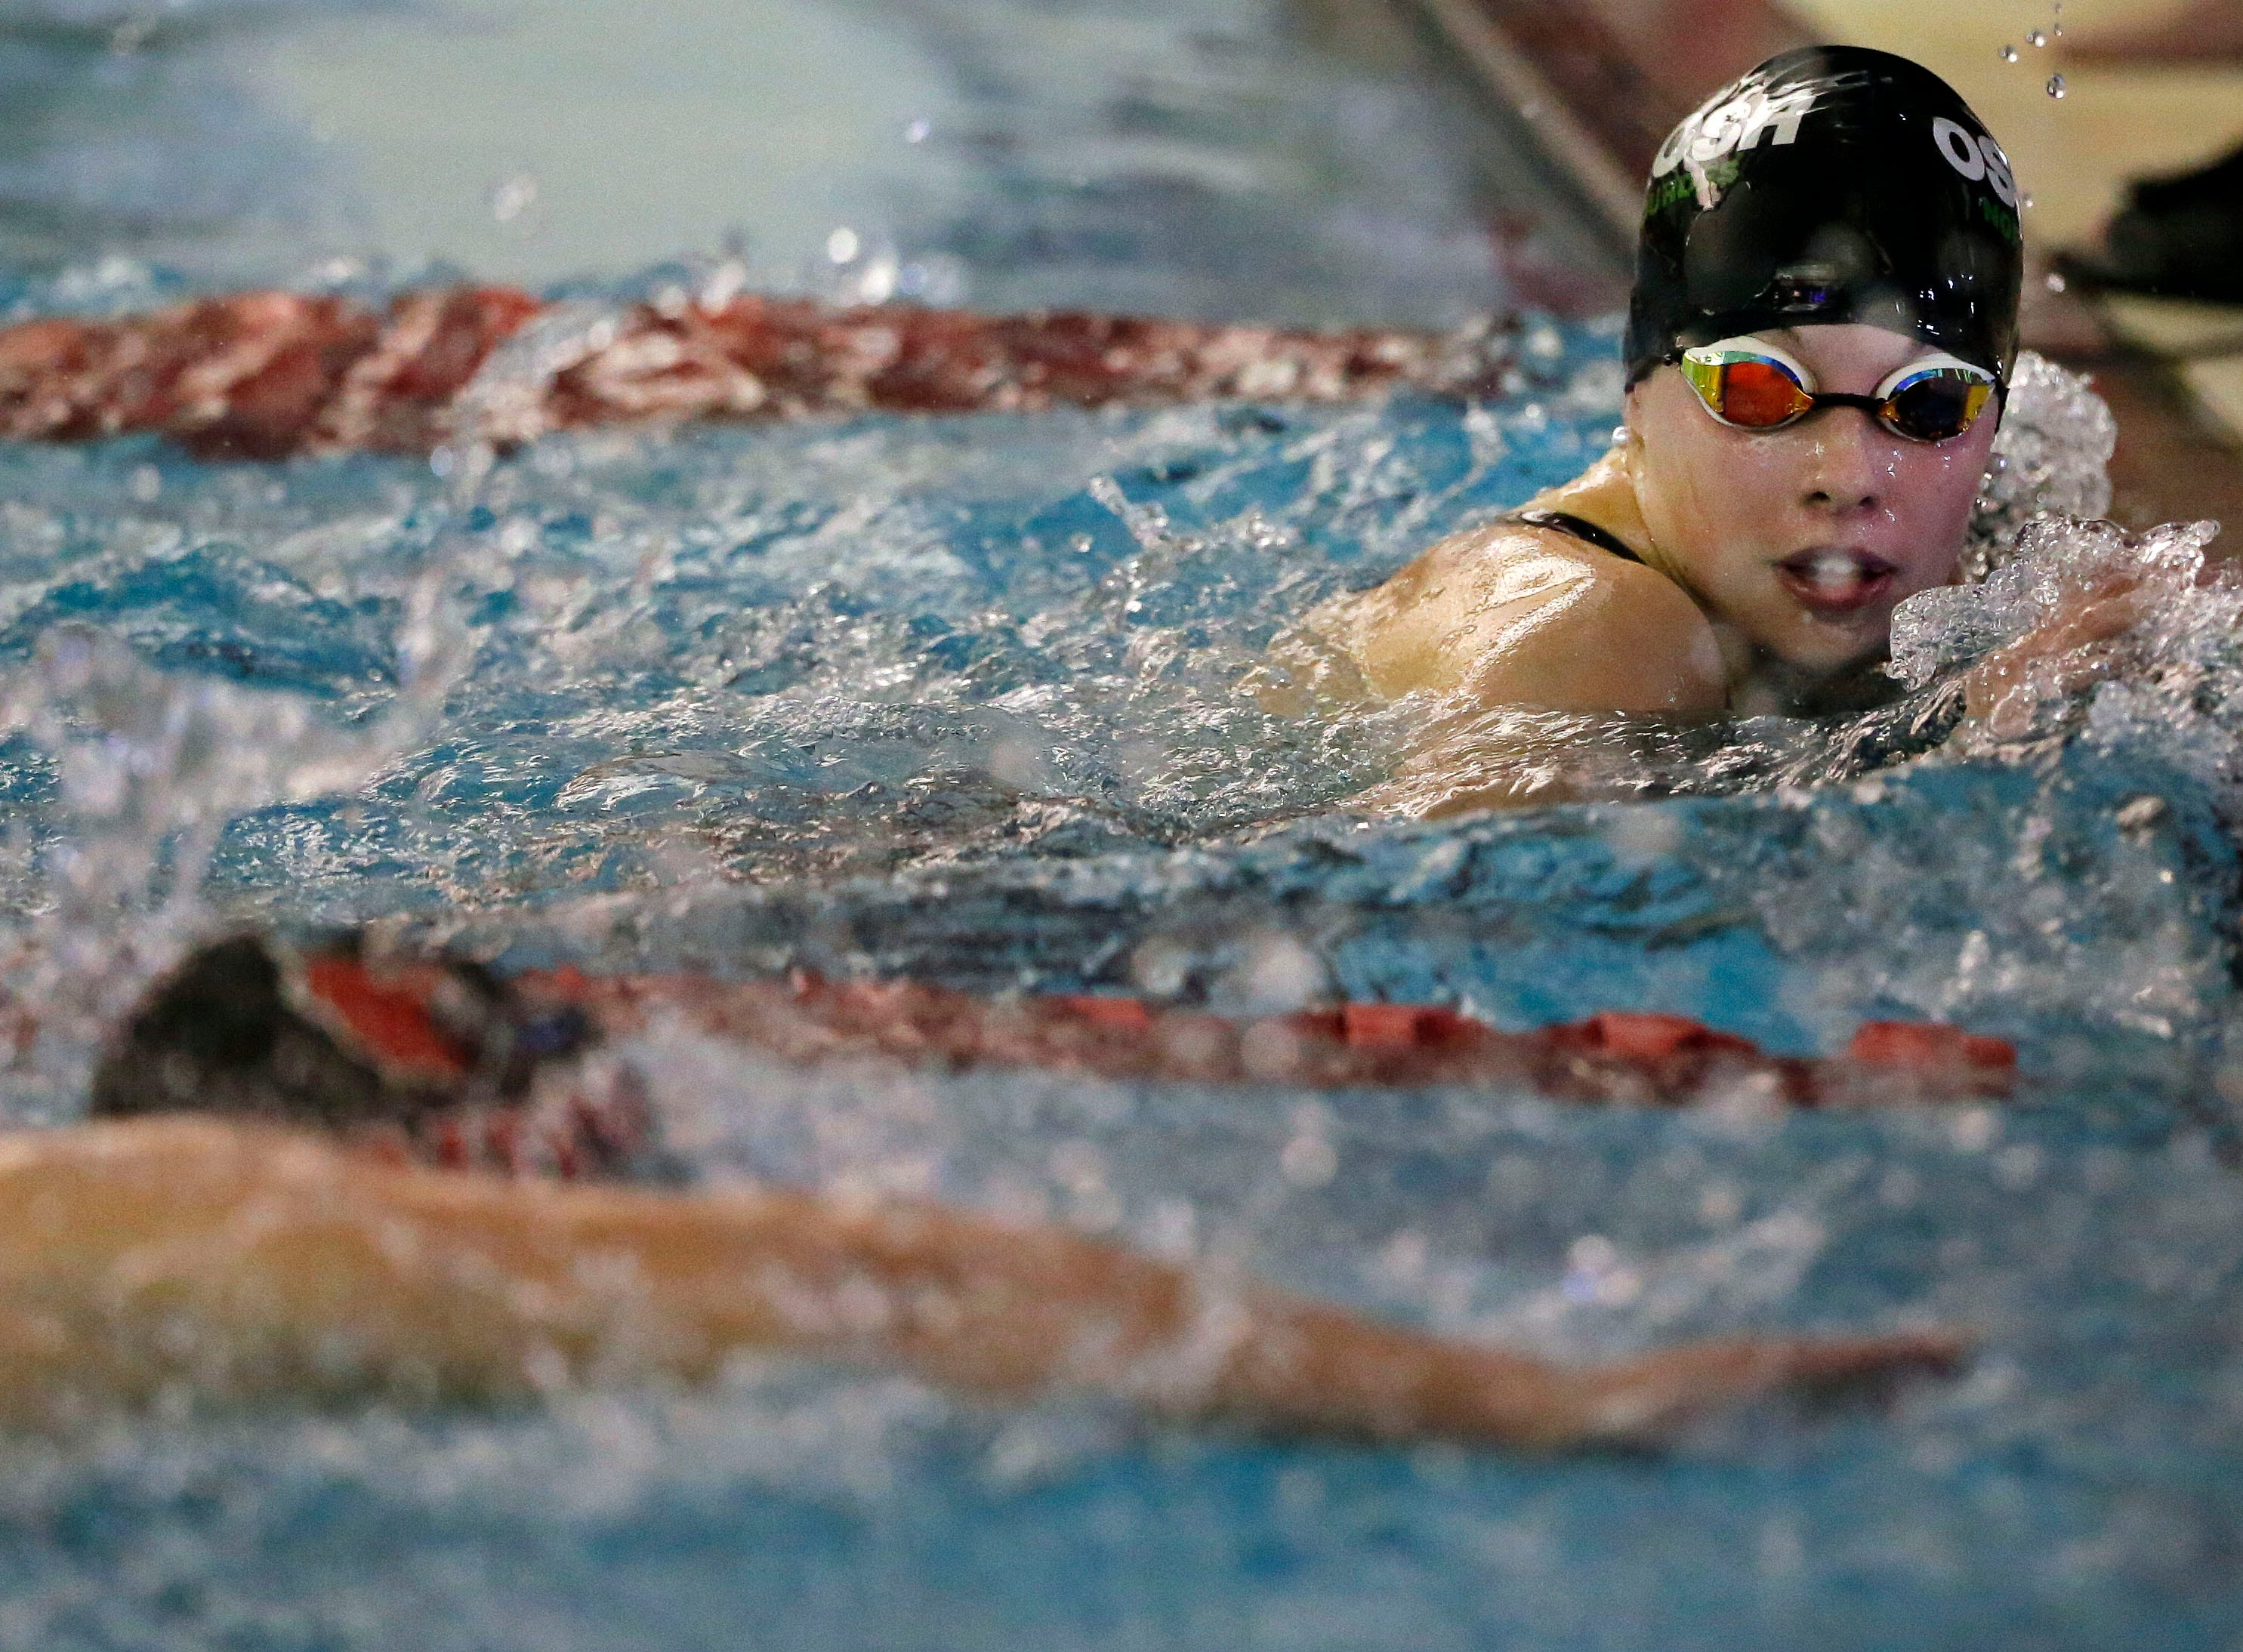 Ali Pecore of Oshkosh North/Lourdes watches as Grace Sphatt of Fond du Lac finishes the 500 Yard Freestyle as the WIAA Division 1 swimming sectional meet takes place Saturday, November 3, 2018, at Neenah High School in Neenah, Wis. Winners advanced to state.Ron Page/USA TODAY NETWORK-Wisconsin